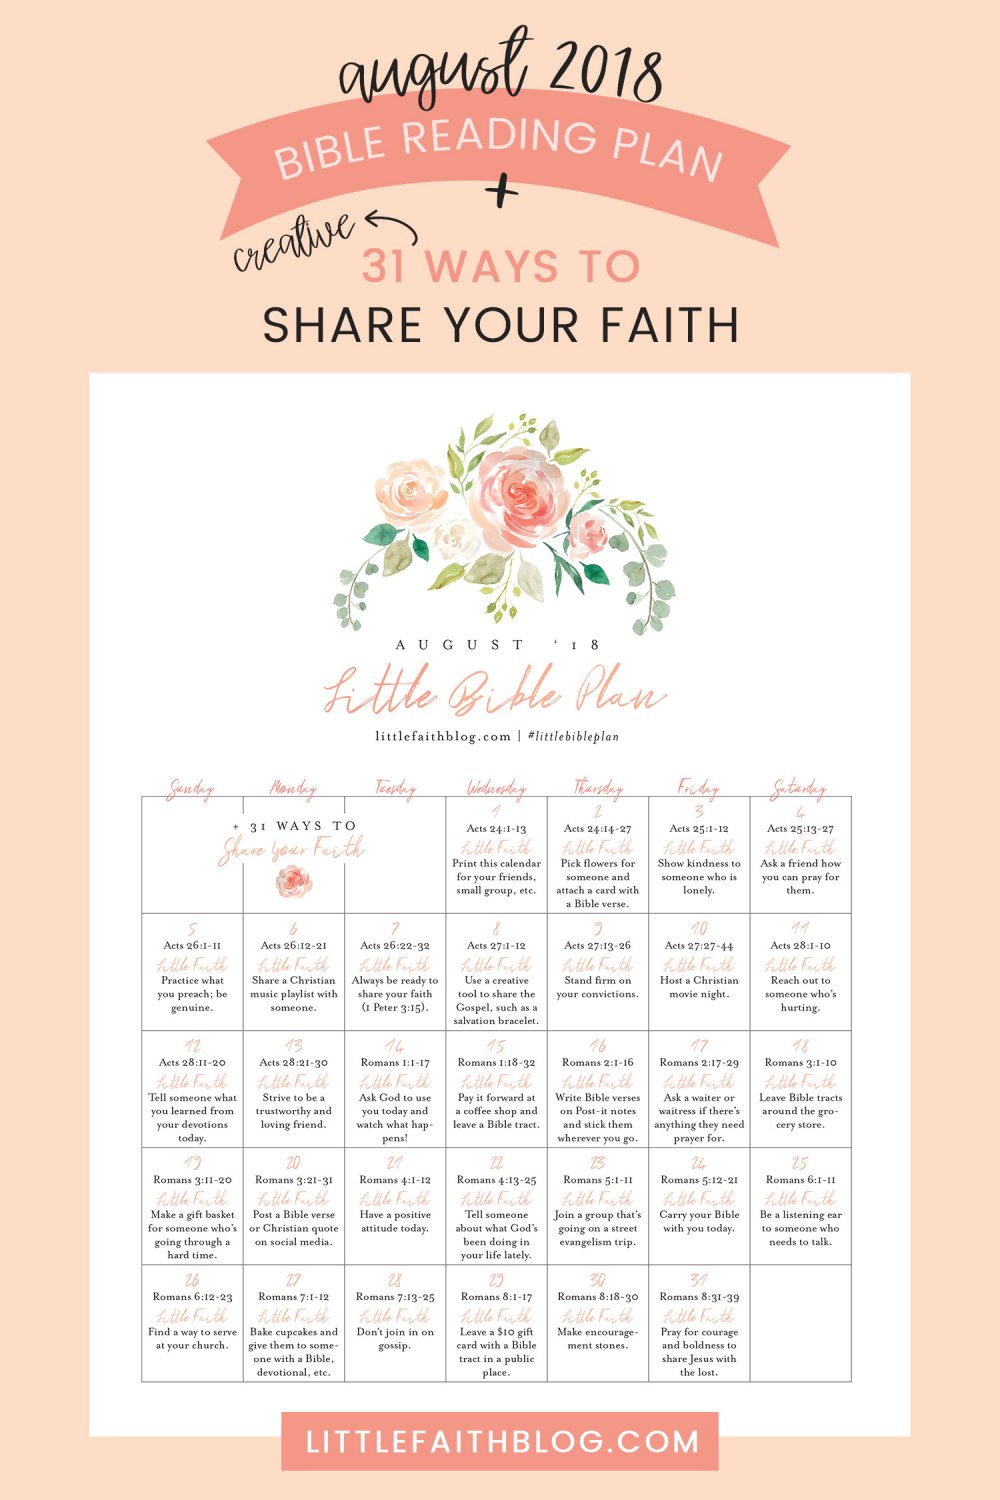 August 2018 Bible Reading Plan + 31 Creative Ways to Share Your Faith